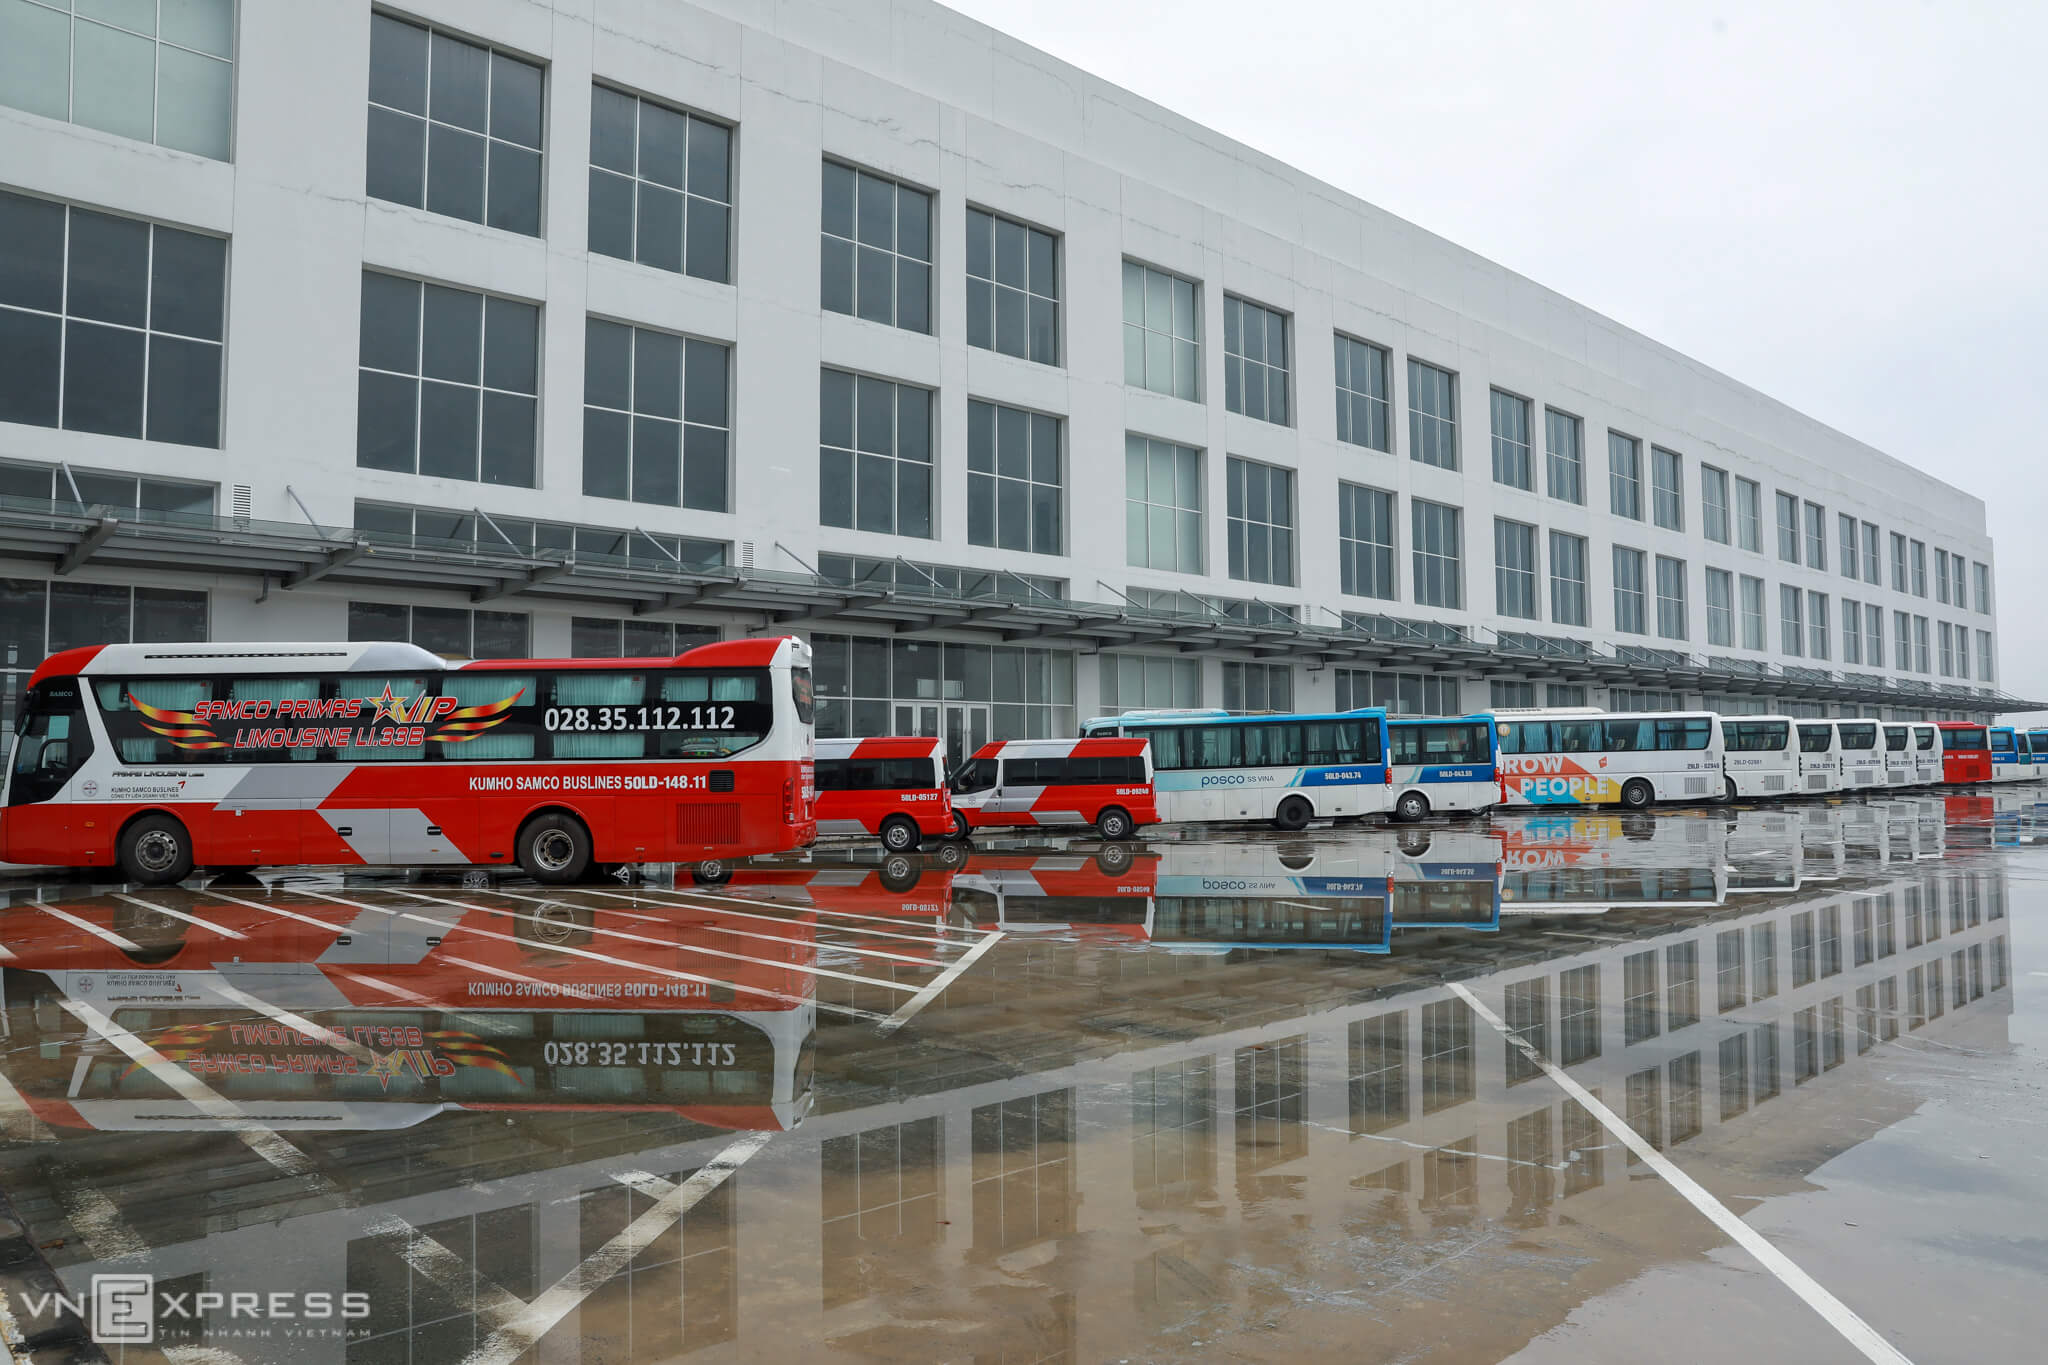 A close look at Vietnam's largest bus station in HCMC